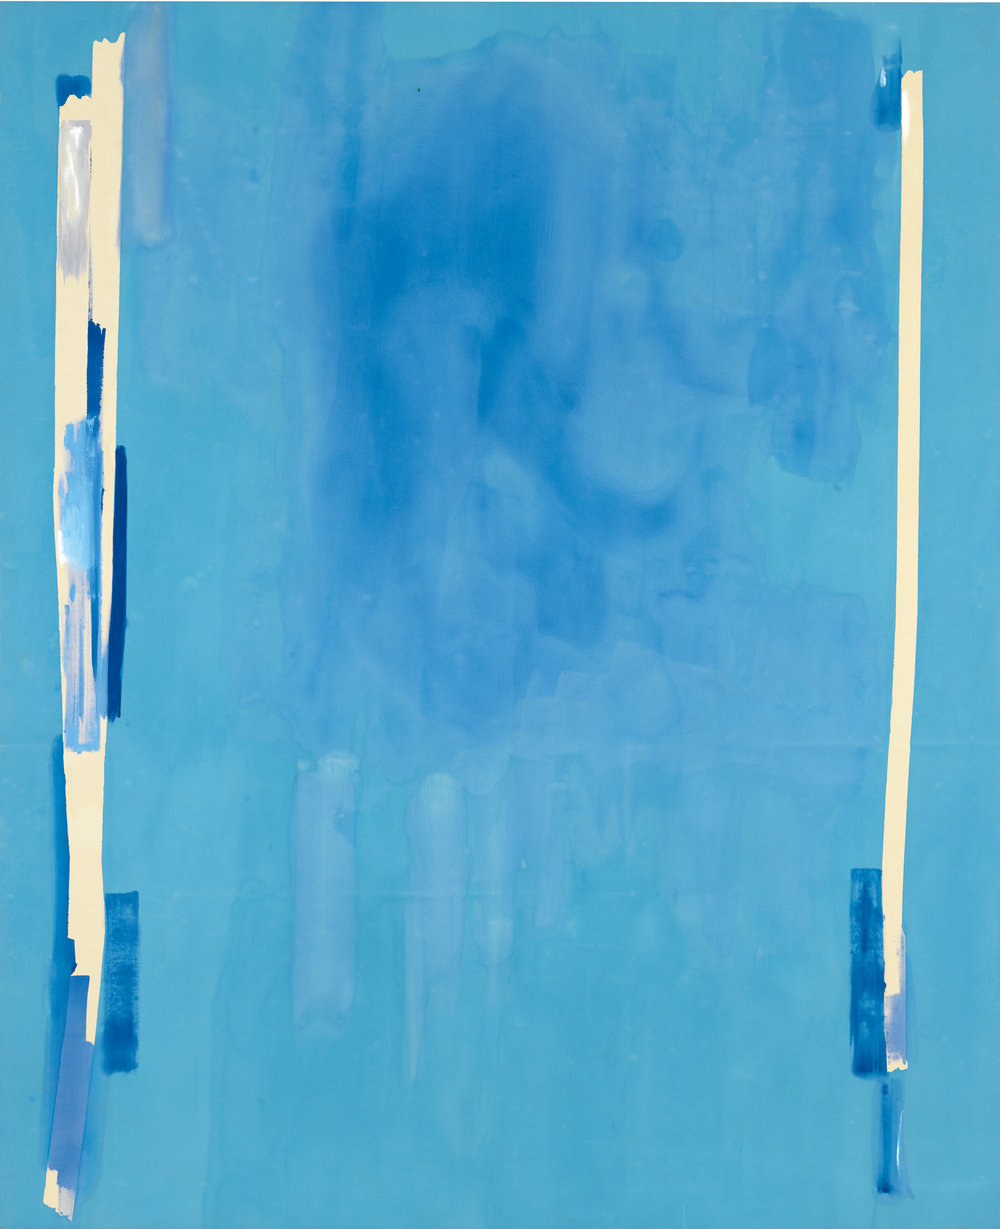 Helen Frankenthaler,  Blue Bellows , 1976, Acrylic on canvas, 115 1/4 × 94 inches (292.7 × 238.8 cm), © 2016 Helen Frankenthaler Foundation, Inc./Artists Rights Society (ARS), New York.. Photo by Rob McKeever